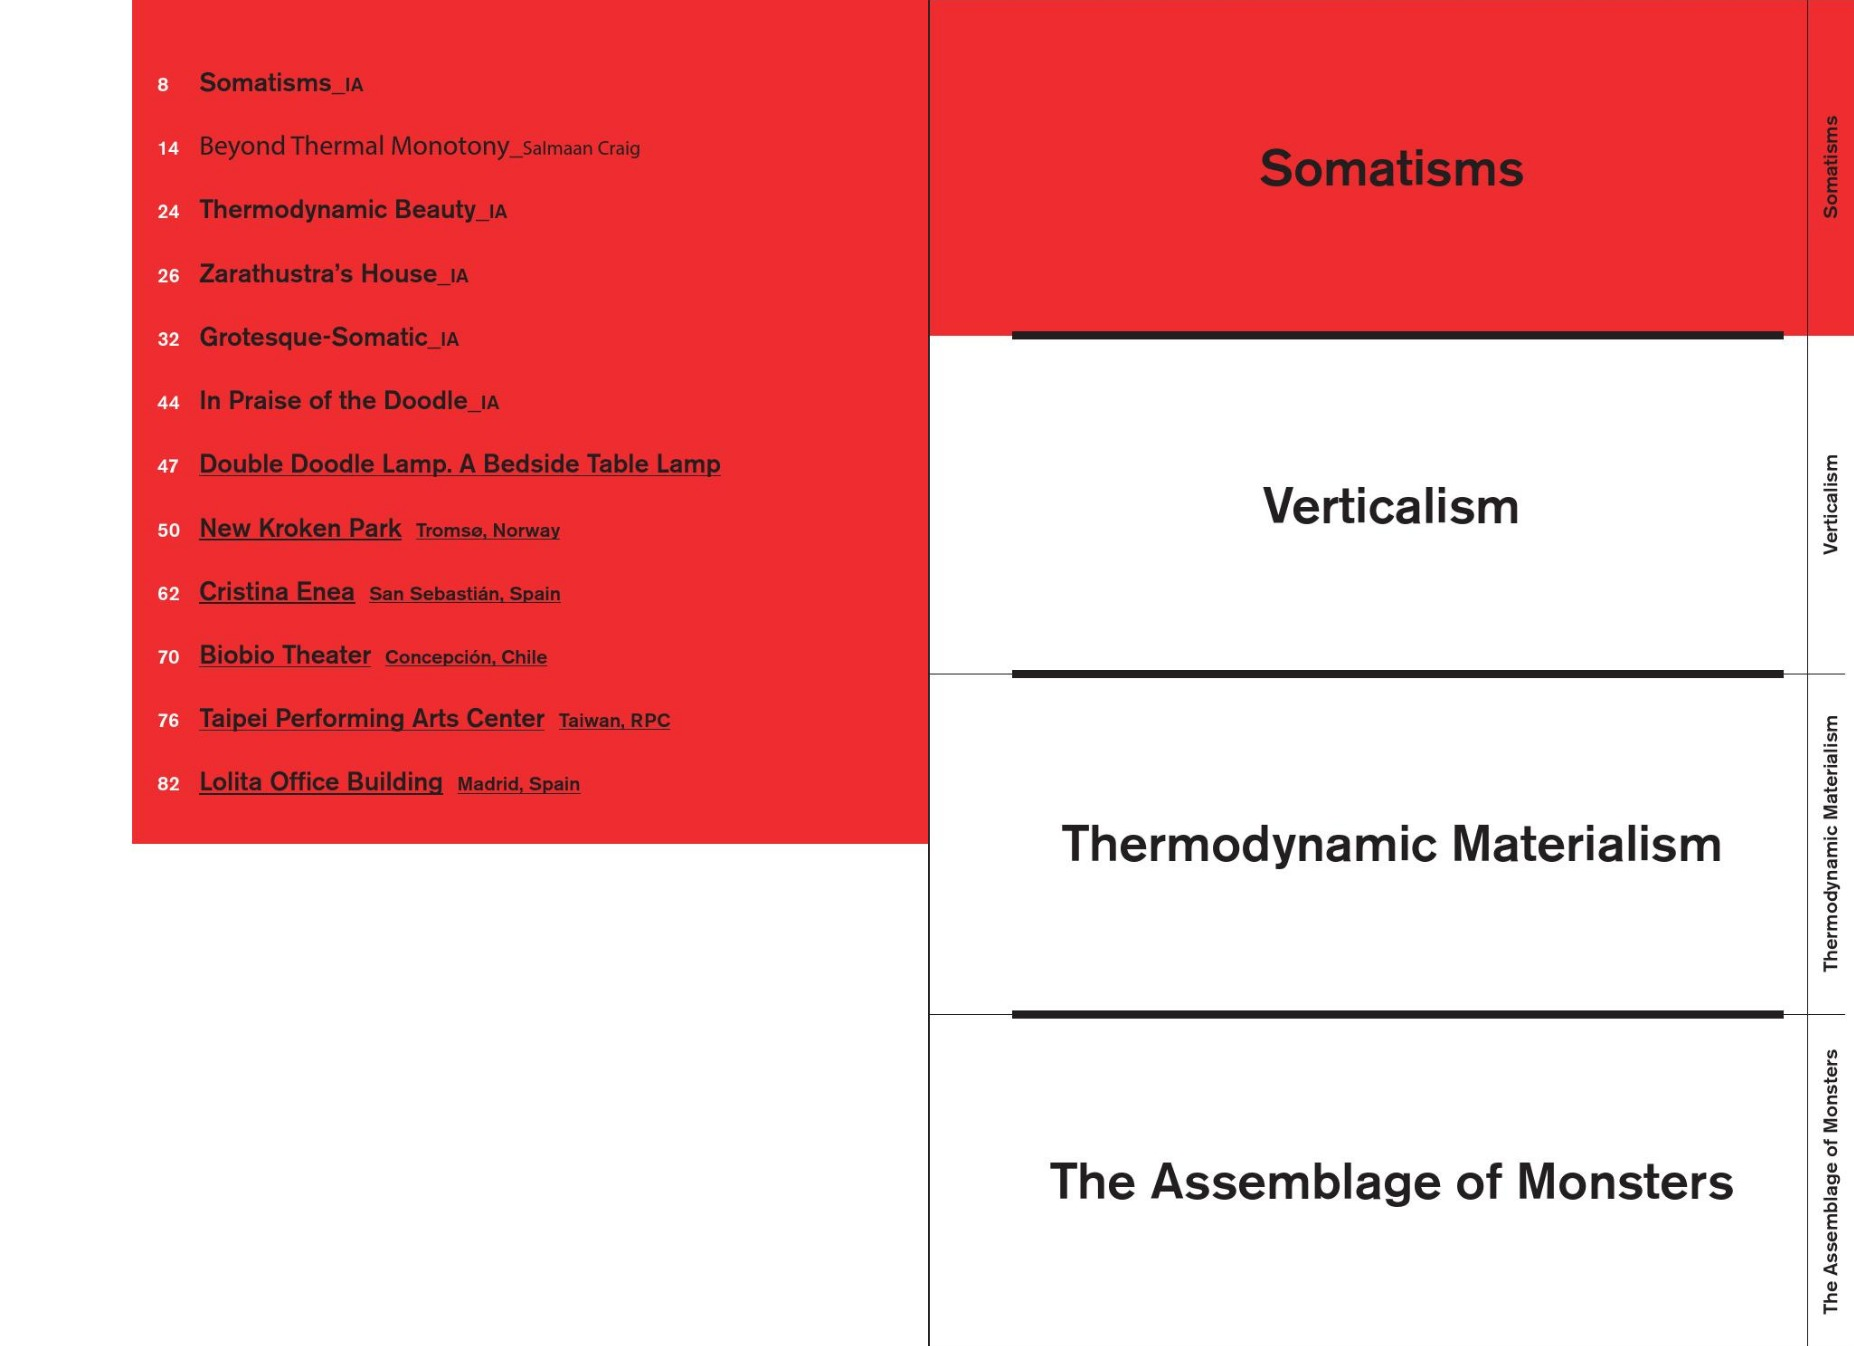 thermodynamics essay Read this essay on laws of thermodynamics facts come browse our large digital warehouse of free sample essays get the knowledge you need in order to pass your classes and more.